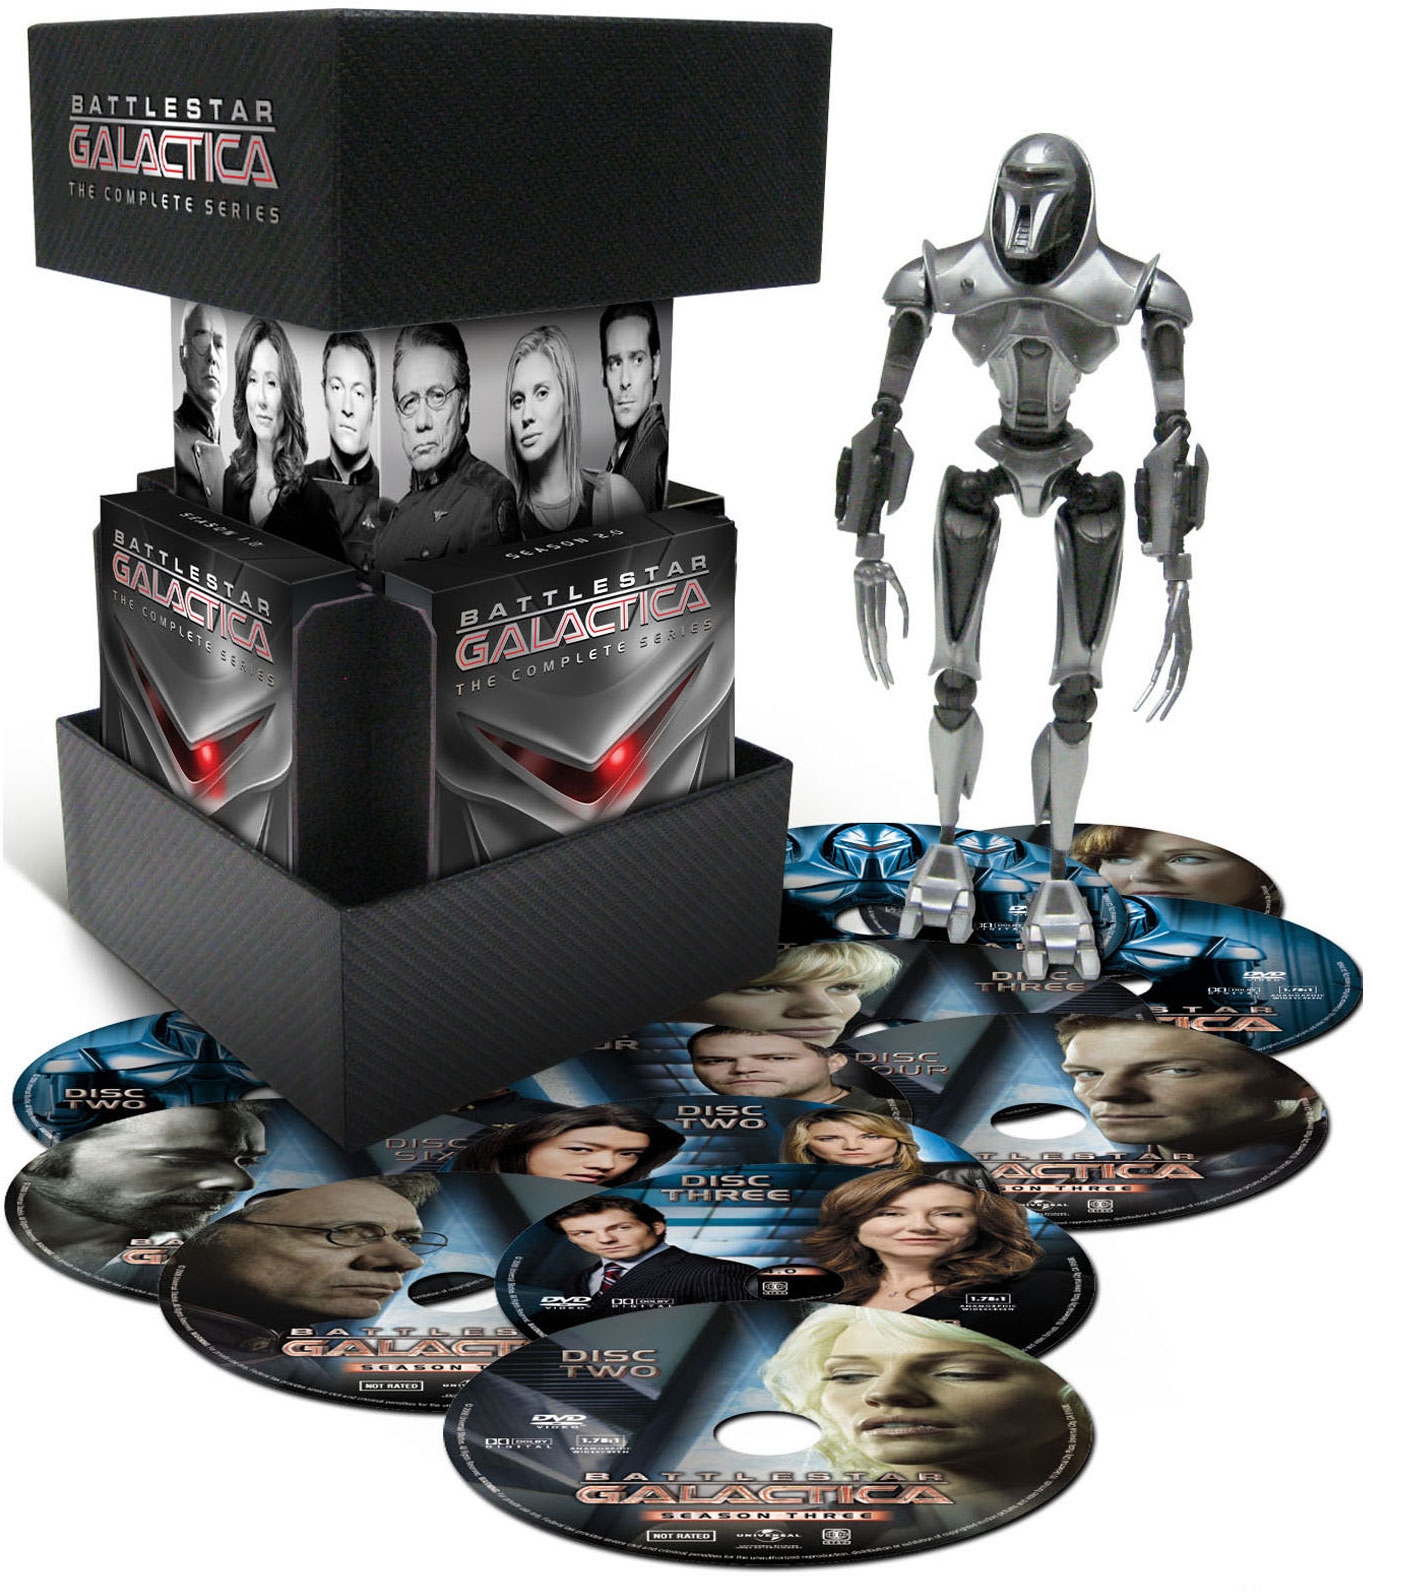 Warriors Vs Knights Live Stream Free: High-Res Look At Battlestar Galactica: The Complete Series